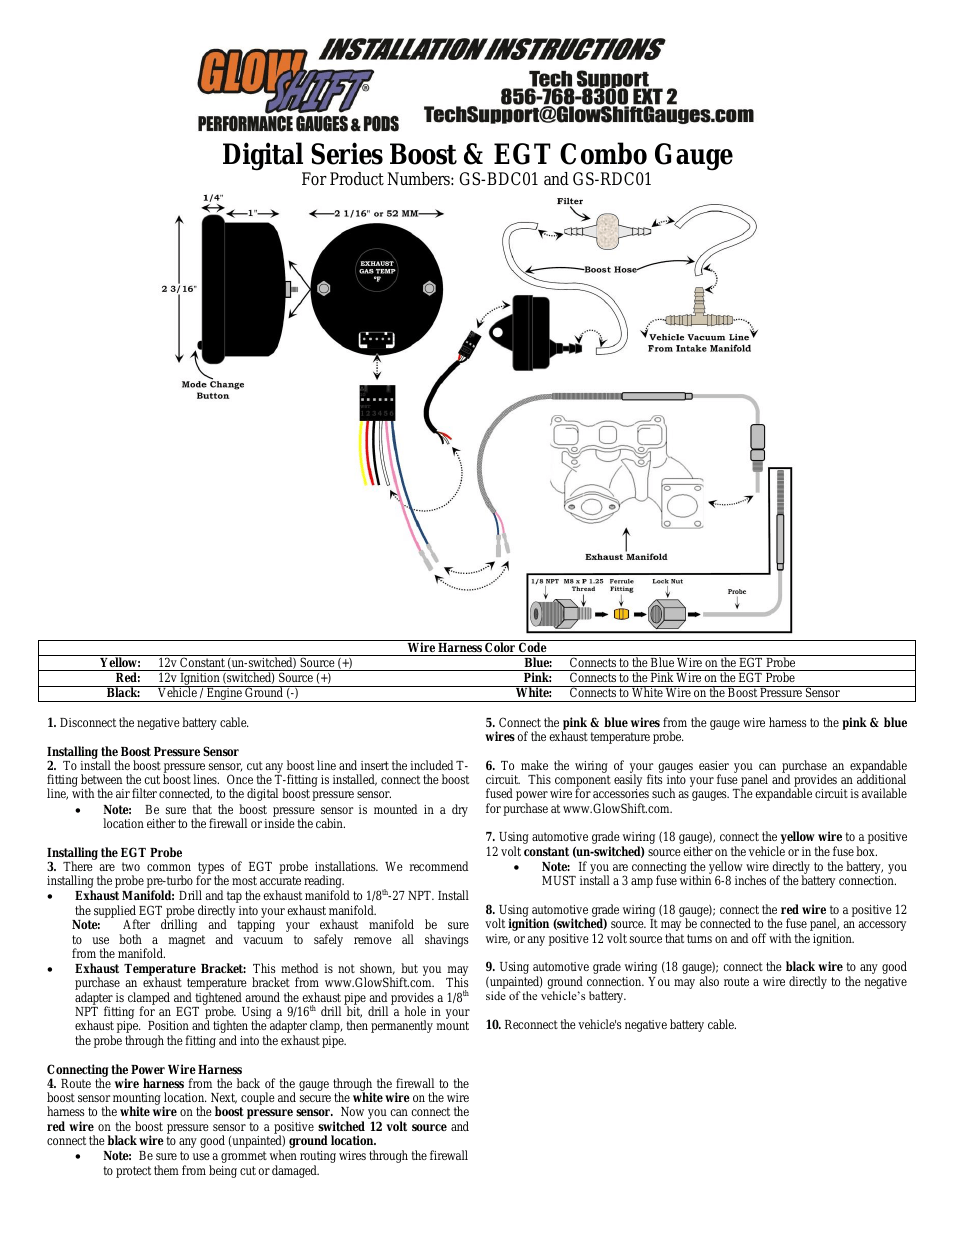 Wiring Diagram For Glowshift Boost Gauge - Gts Wiring Diagram -  delco-electronics.gotoscool.jeanjaures37.fr | Wrx Glowshift Wiring Diagram |  | Wiring Diagram Resource